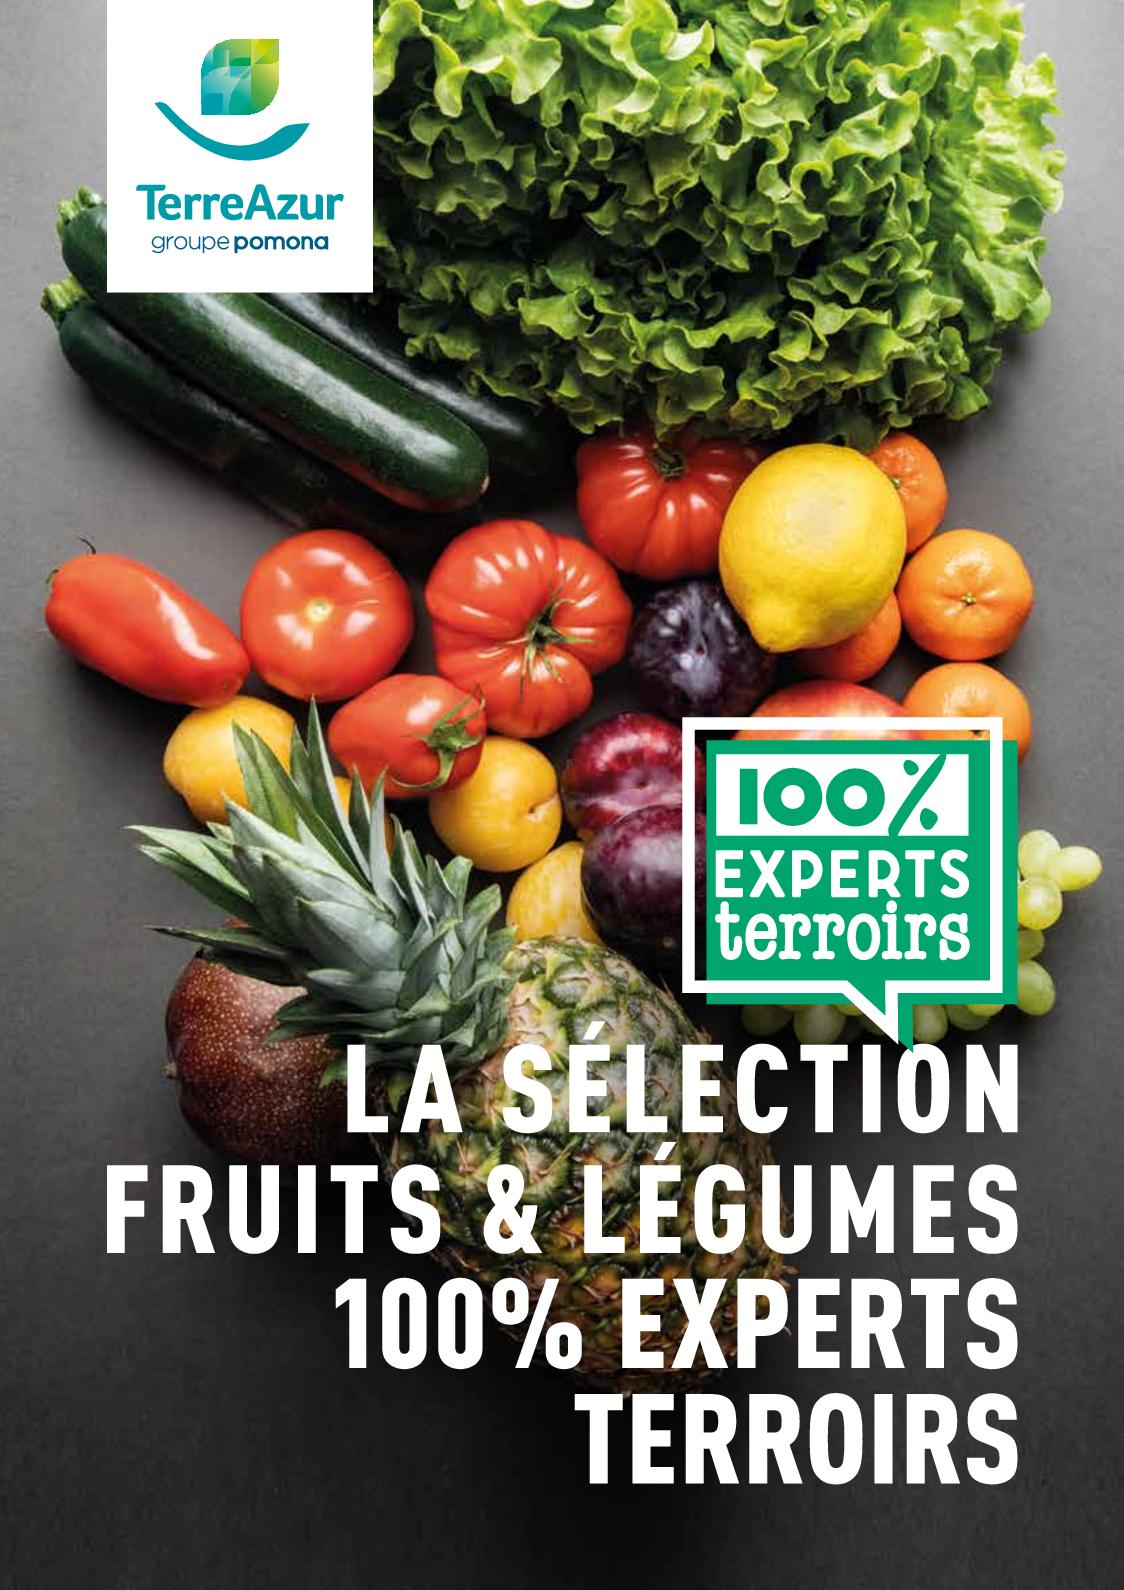 Catalogue additionnel 100% Experts Terroirs